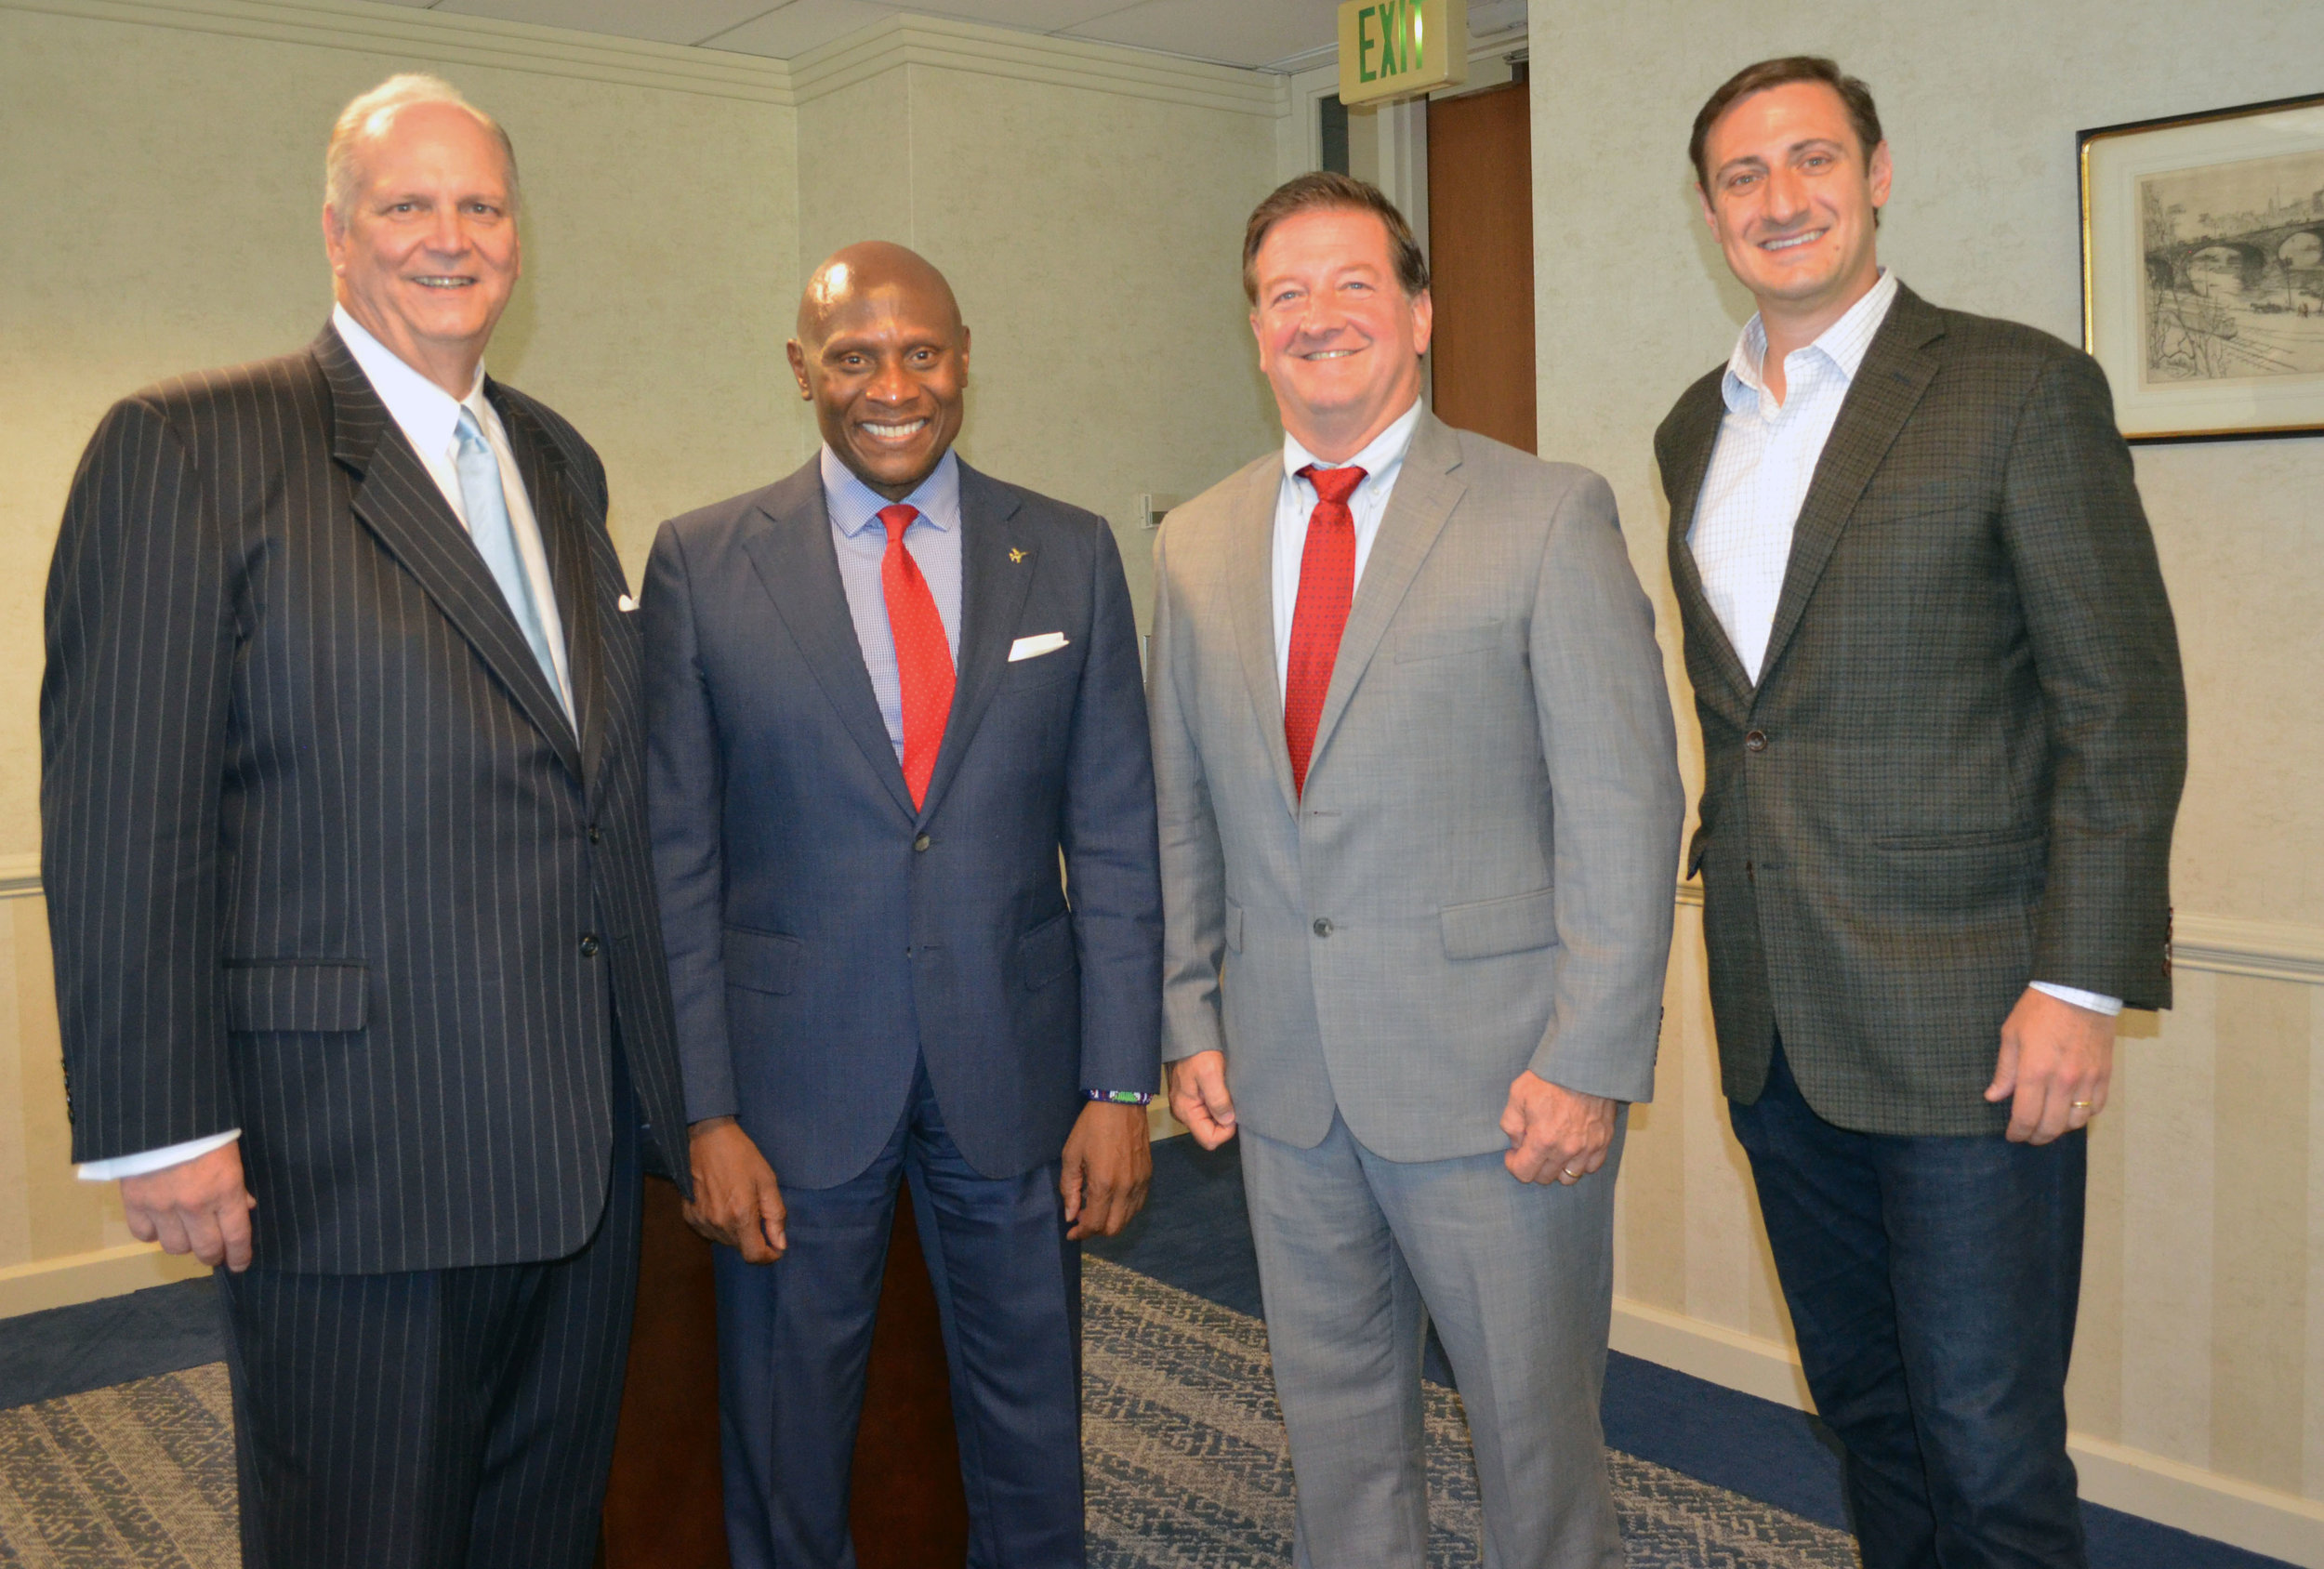 Donald Fry (GBC), Robert Wallace (BithGroup Technologies), Dave Hartman ( Hartman Advisors), Ryan LaSalle (Accenture) at Greater Baltimore Committee Cyber Security Event